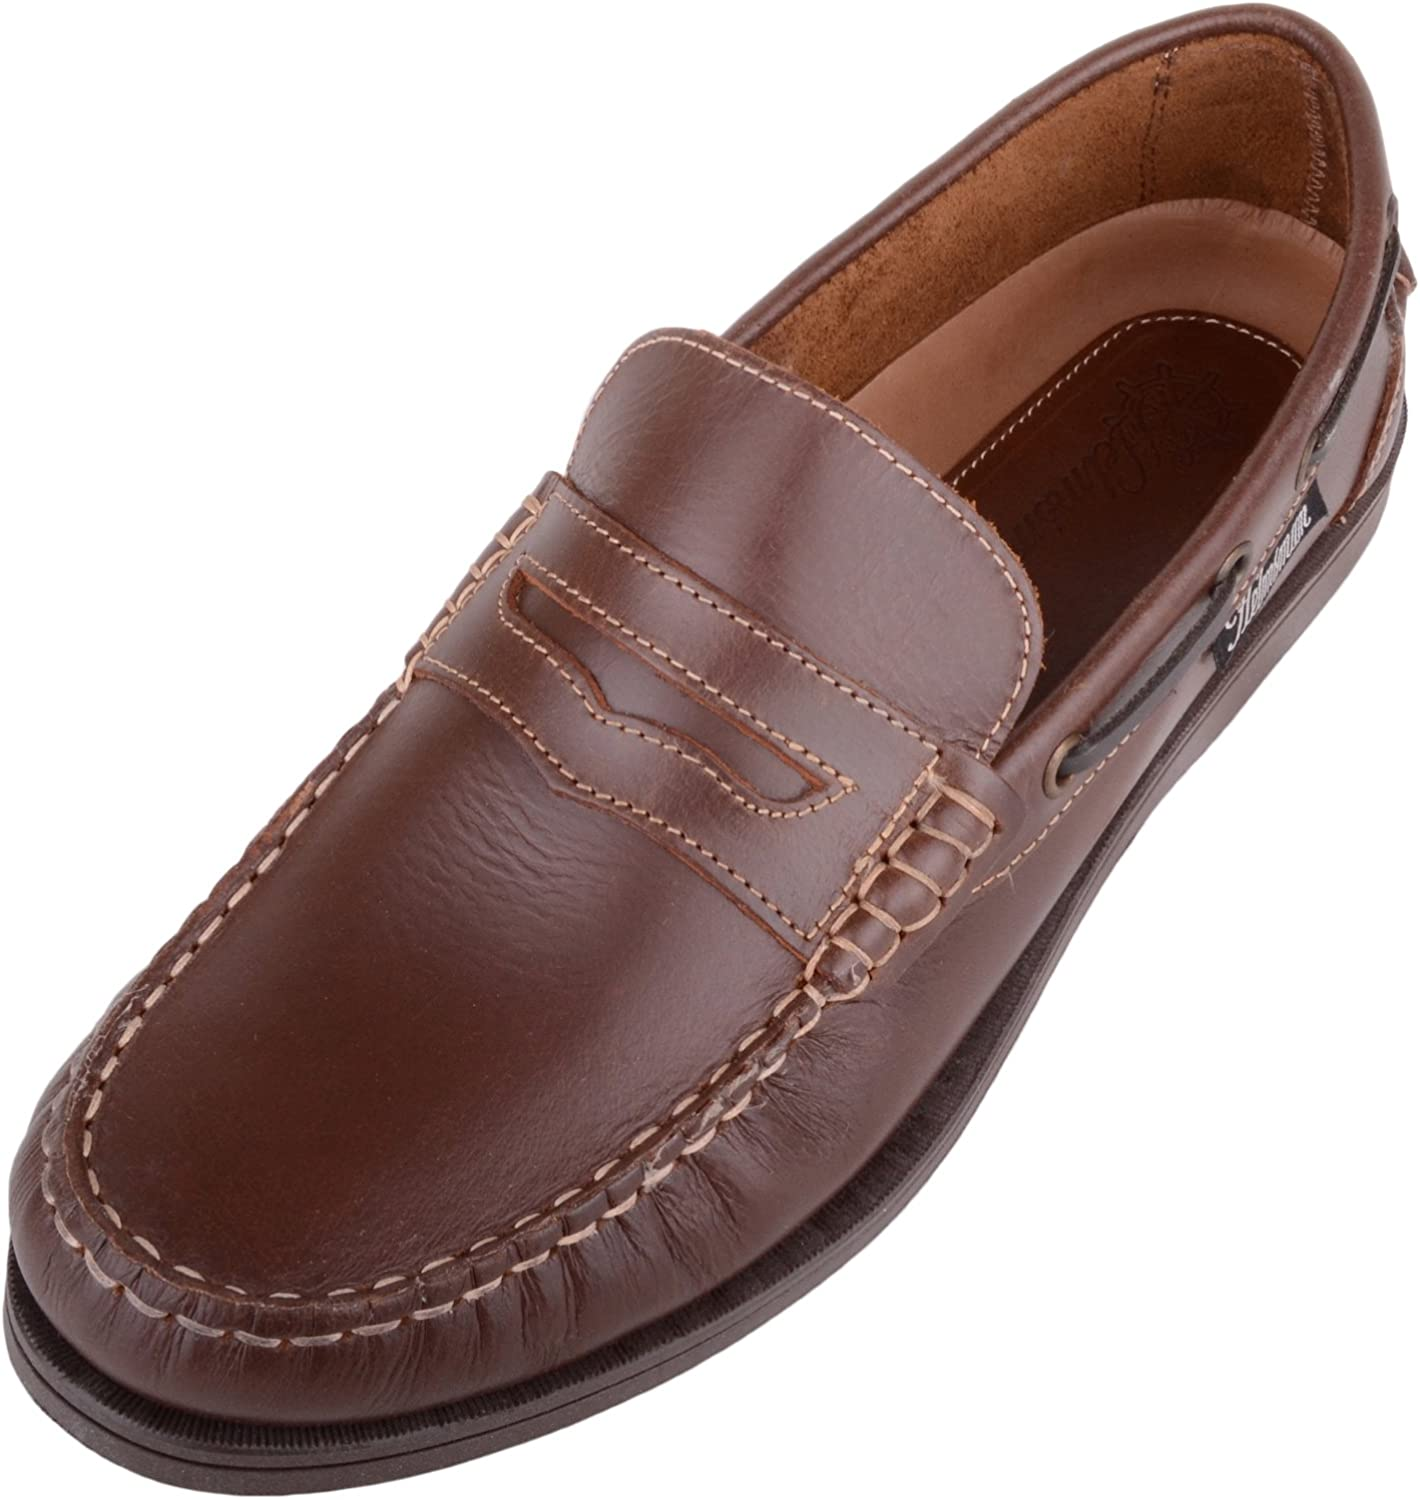 Mens Genuine Leather Summer Holiday Slip On Boat Deck shoes